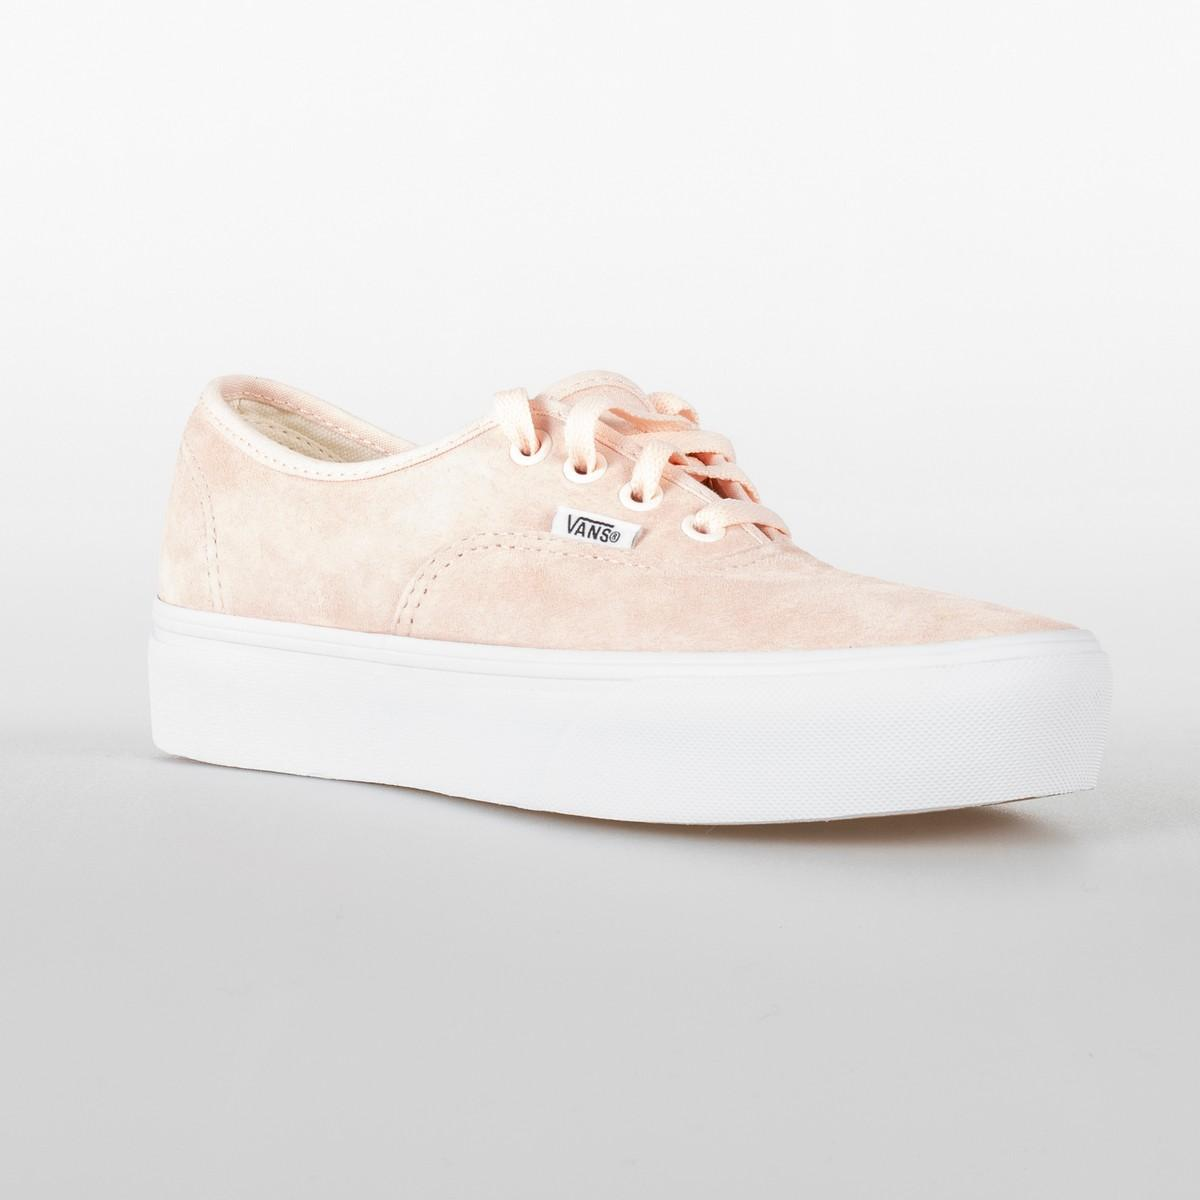 SCARPA DONNA VANS AUTHENTIC PLATFOR VN0A3AV8S3M PALE DOGWOOD